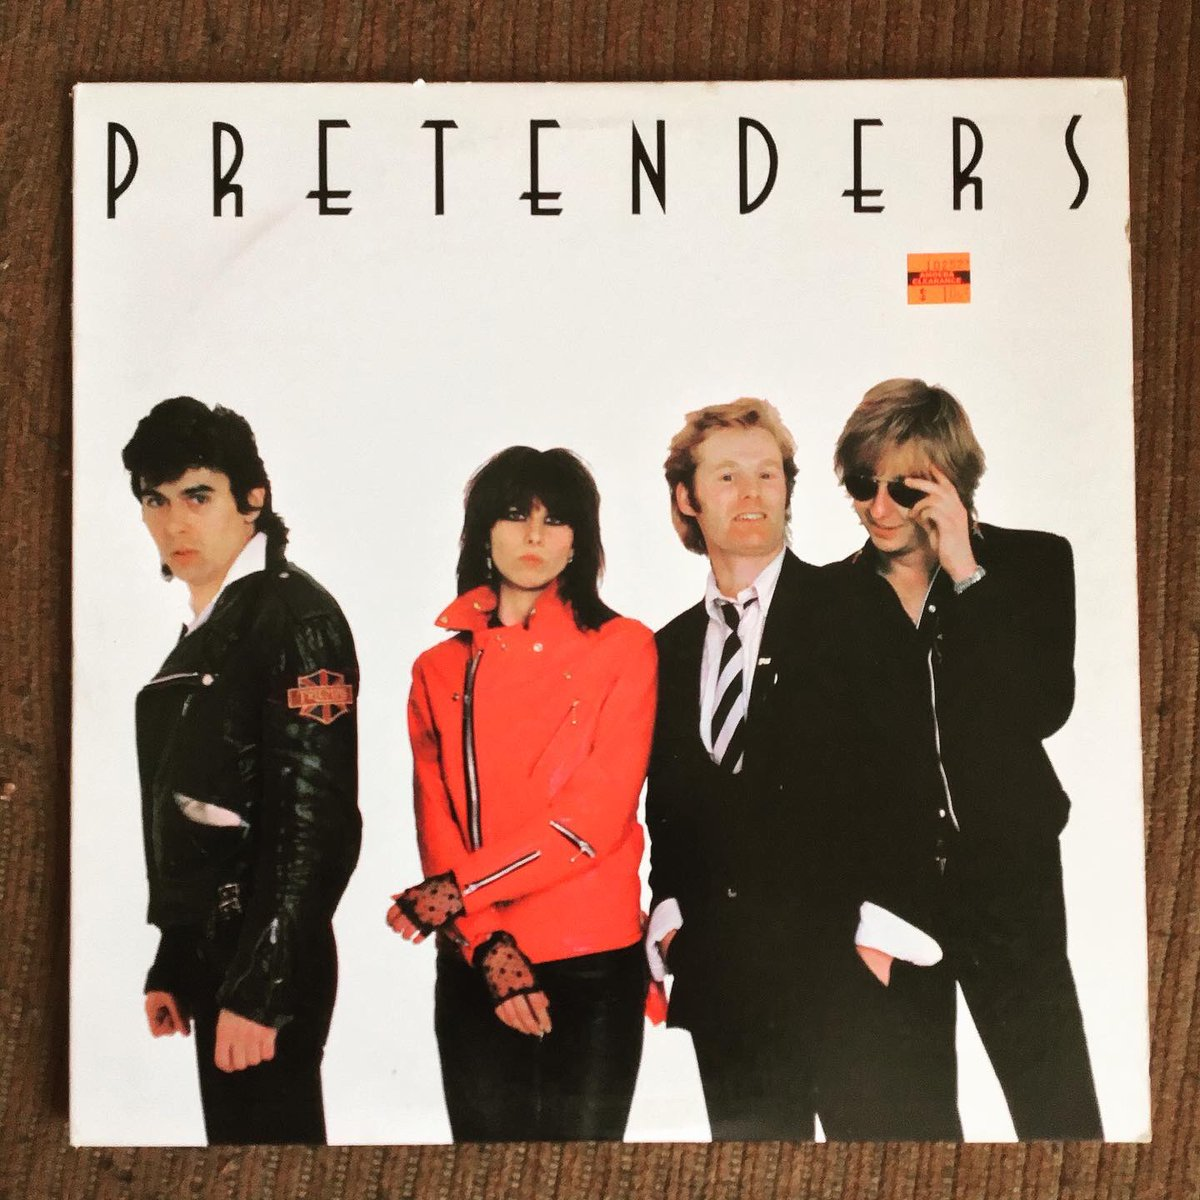 #OnThisDay January 19, 1980 @thepretendershq released their self titled, debut studio album in the US which charted at #1 on the @officialcharts and #9 on the @billboardcharts.  The album is certified platinum and includes the singles #StopYourSobbing